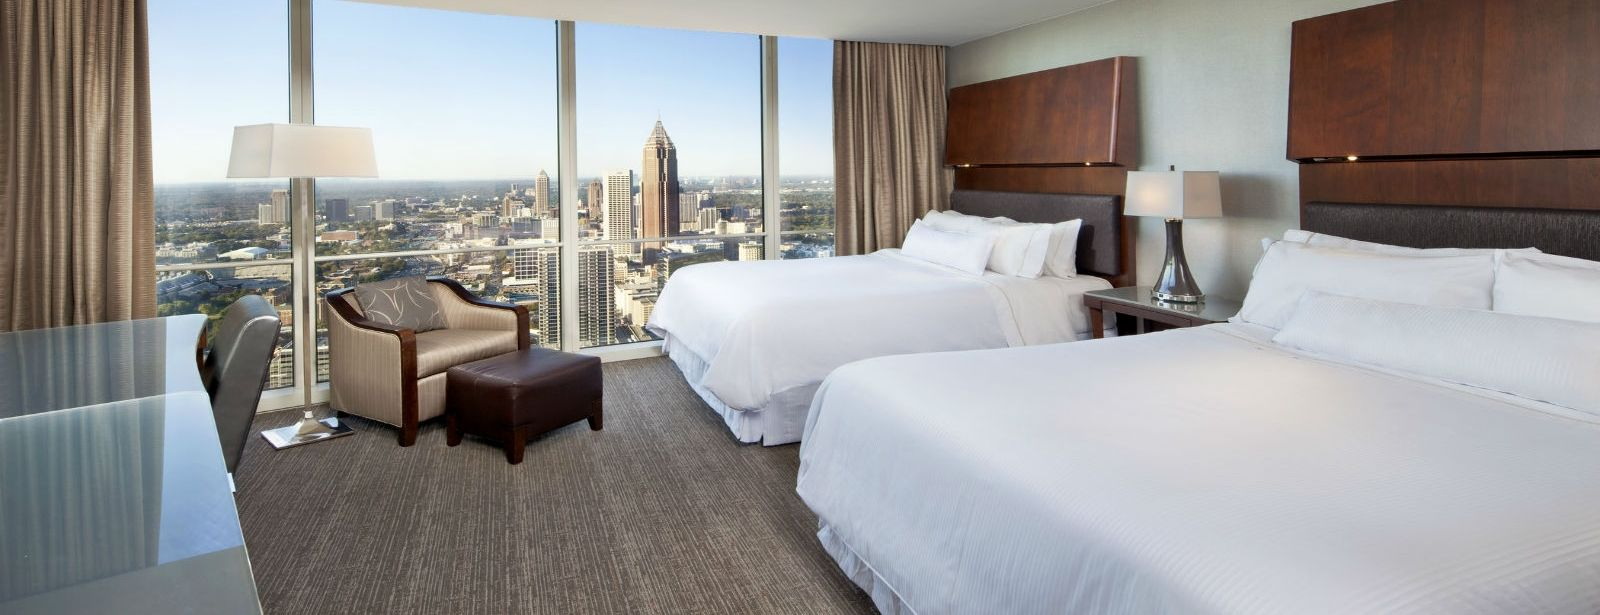 Premium Deluxe Guestrooms - The Westin Peachtree Plaza Hotel